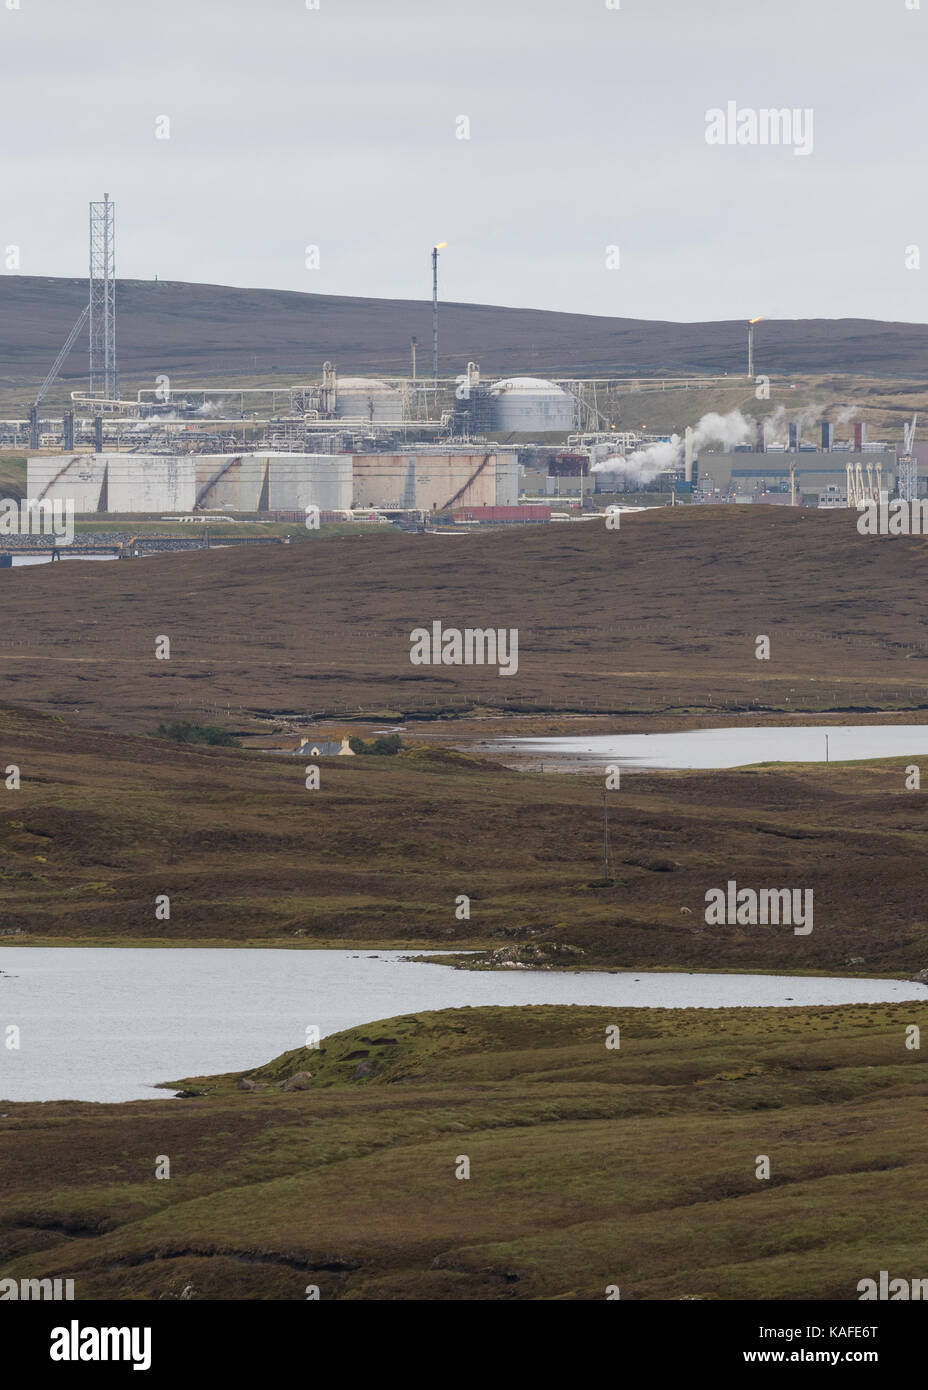 Sullom Voe Oil Terminal, Shetland Islands, Scotland, UK - Stock Image